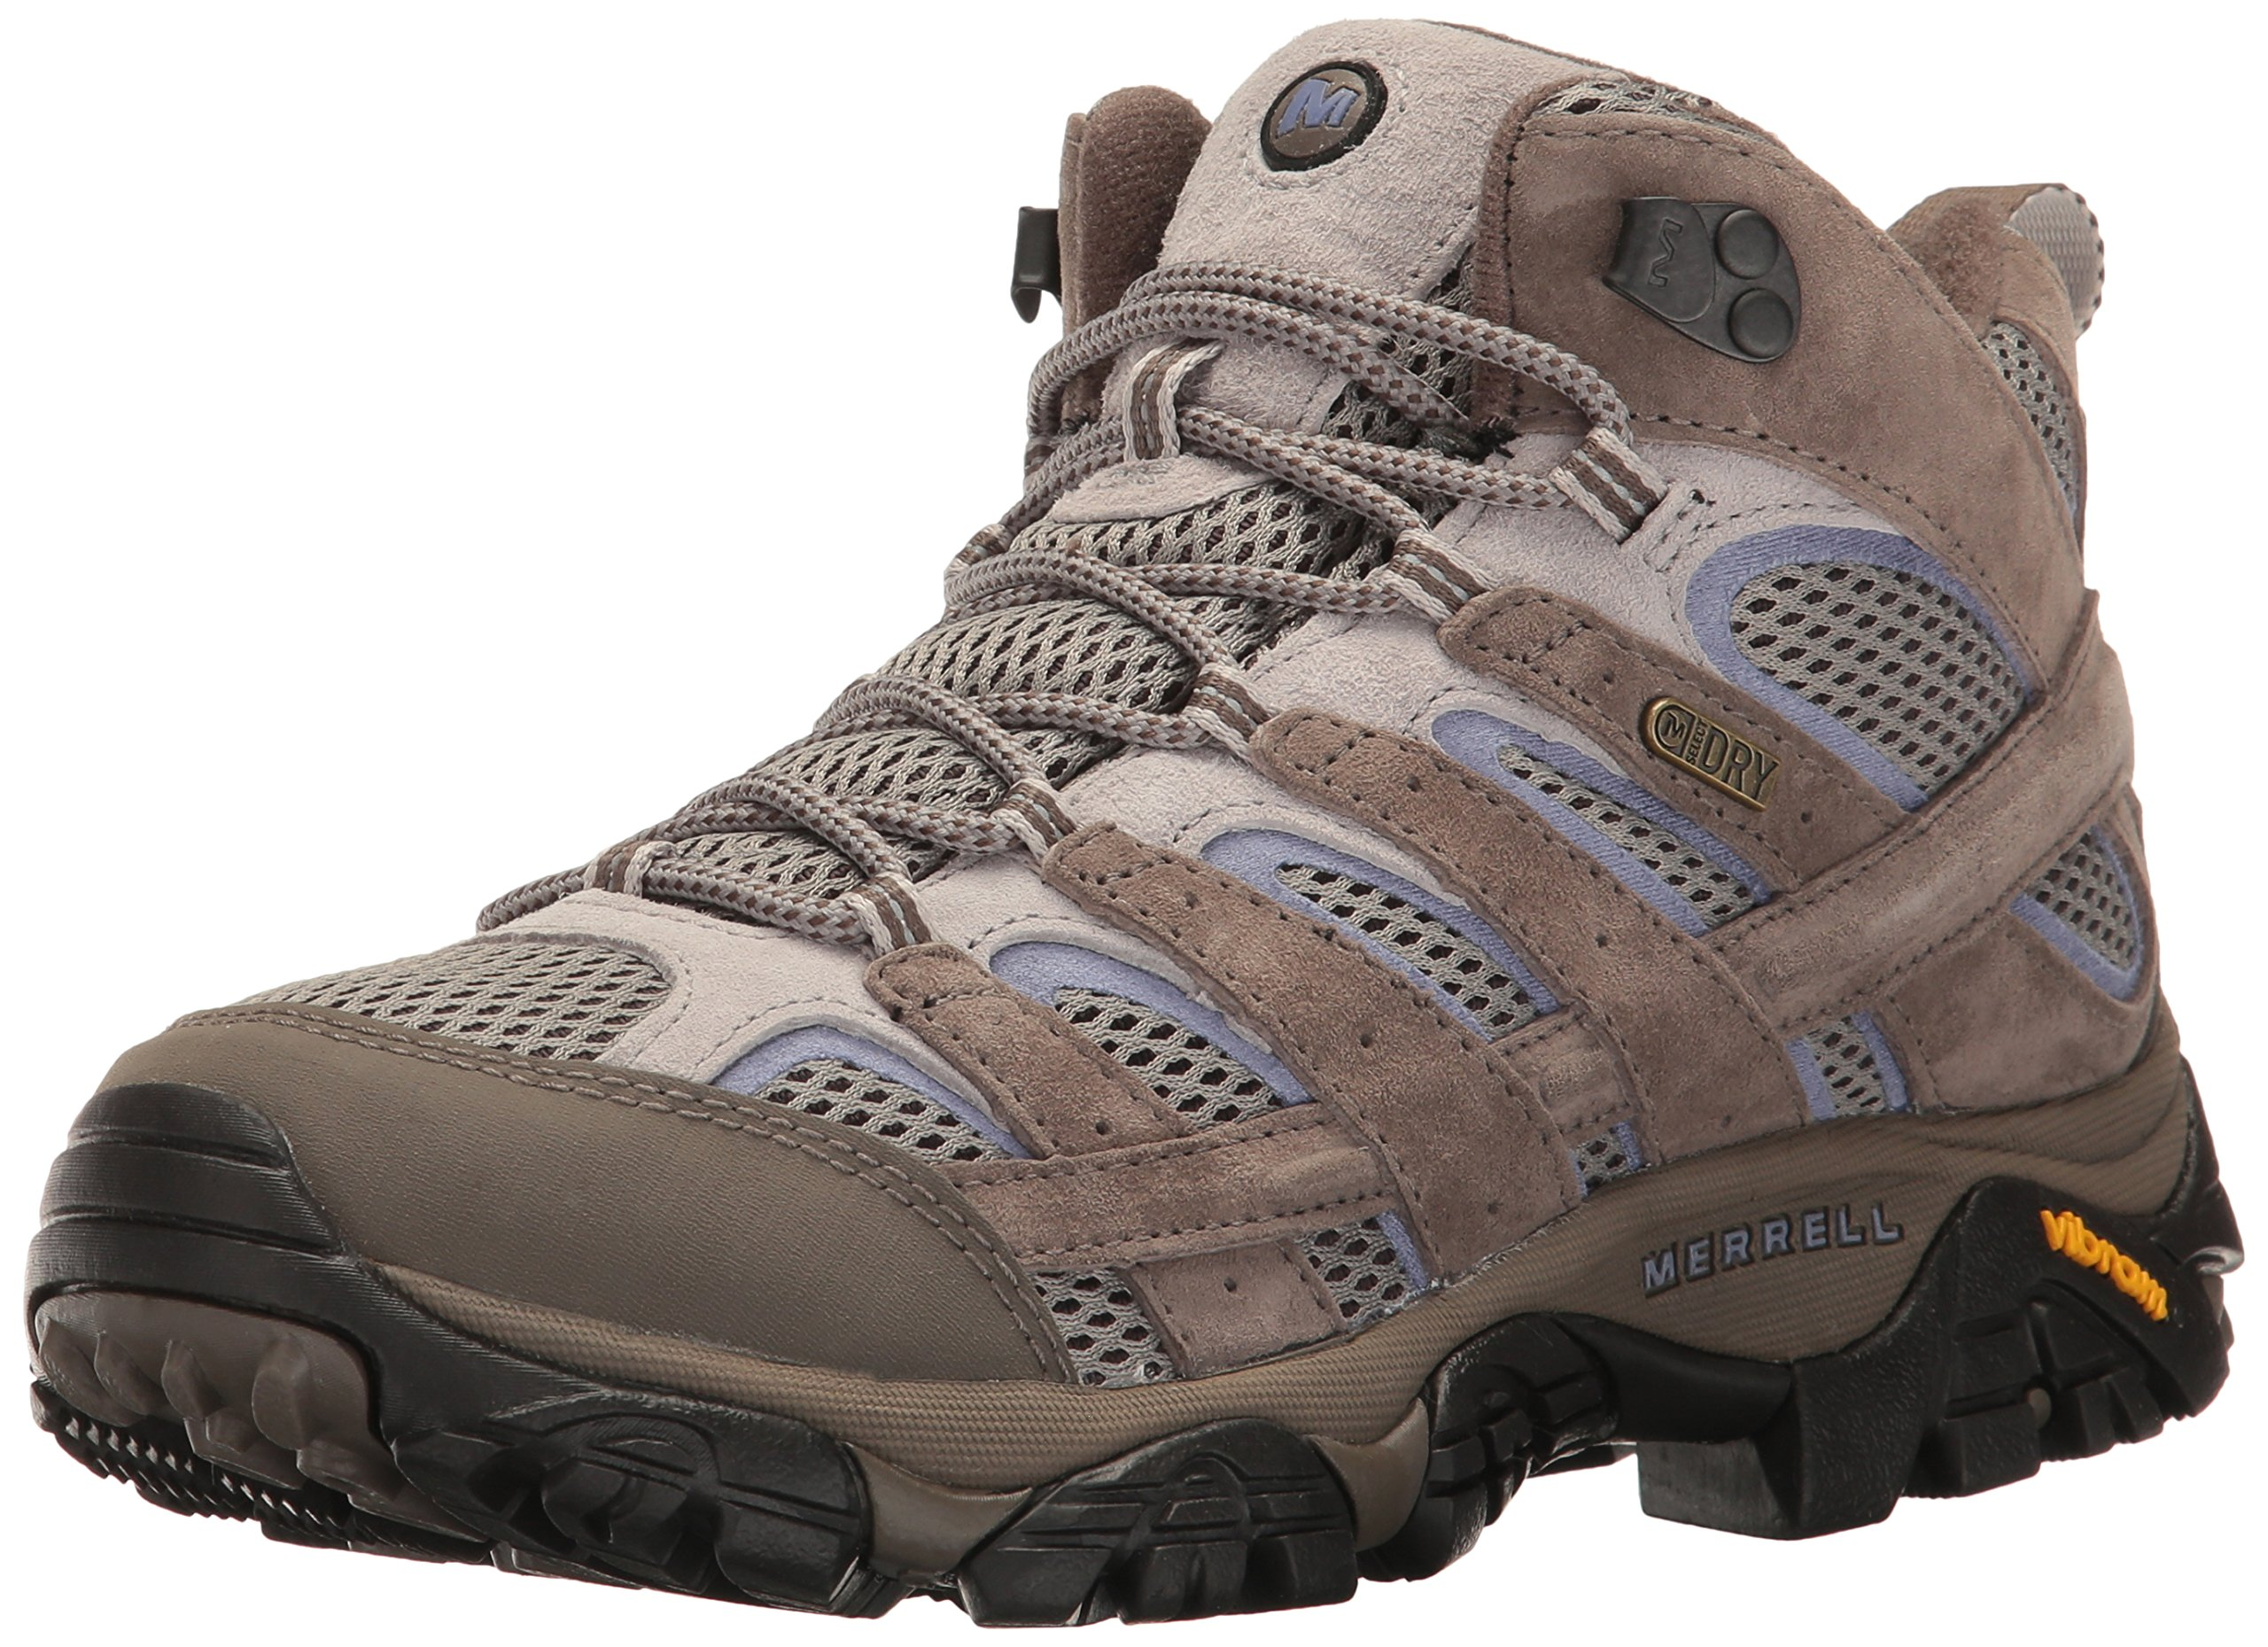 Merrell Women's Moab 2 Mid Waterproof Hiking Shoe, Falcon, 8 M US